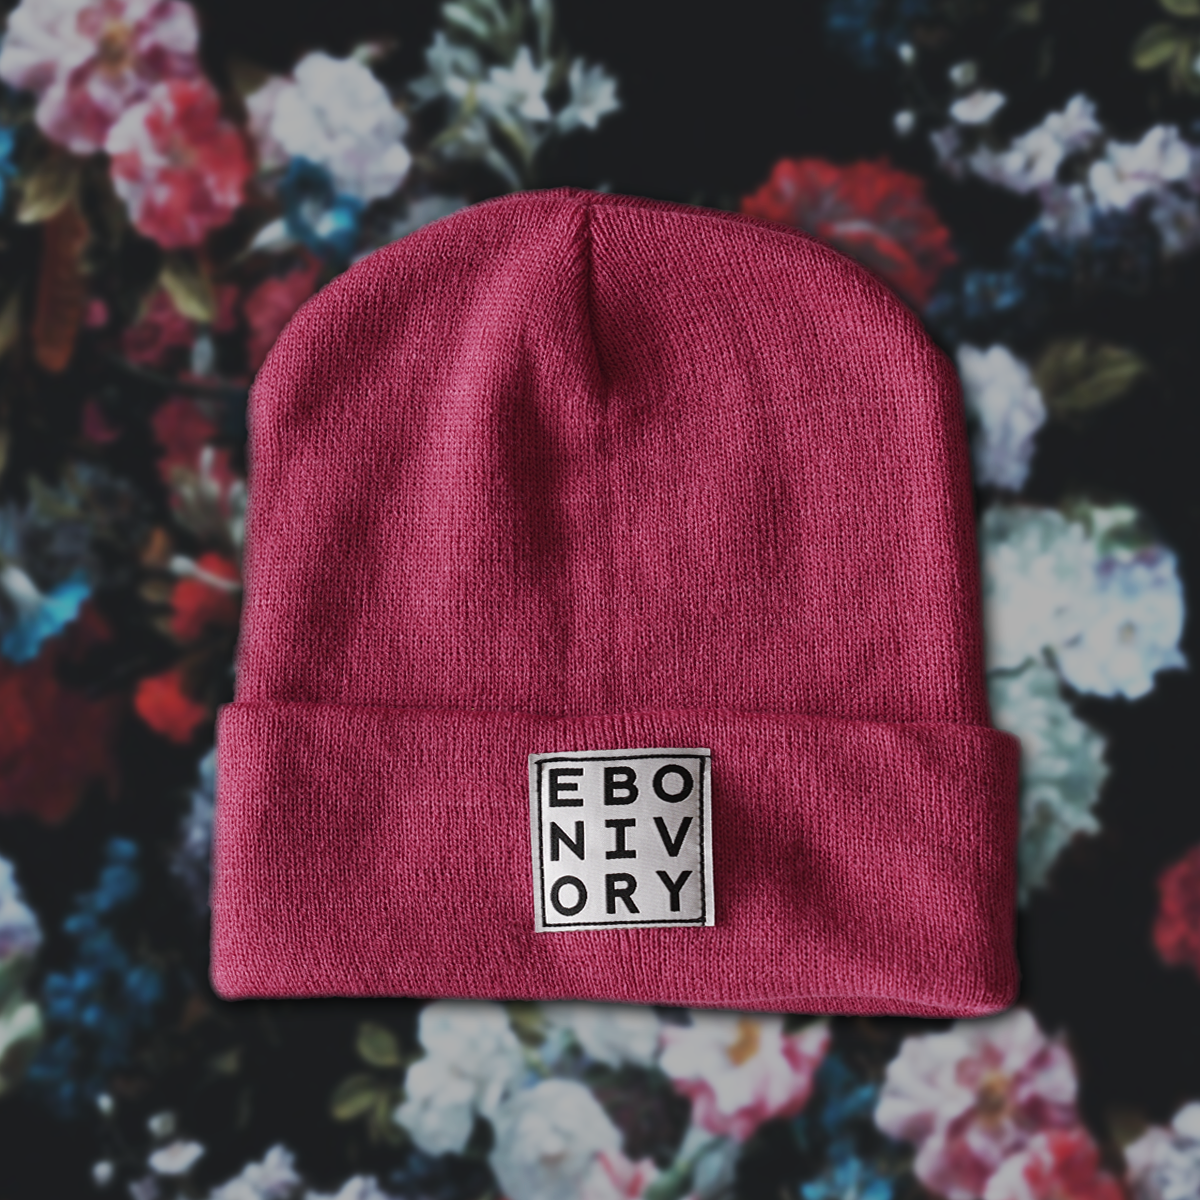 EBONIVORY // SQUARE LOGO BEANIE // PINK - Wild Thing Records